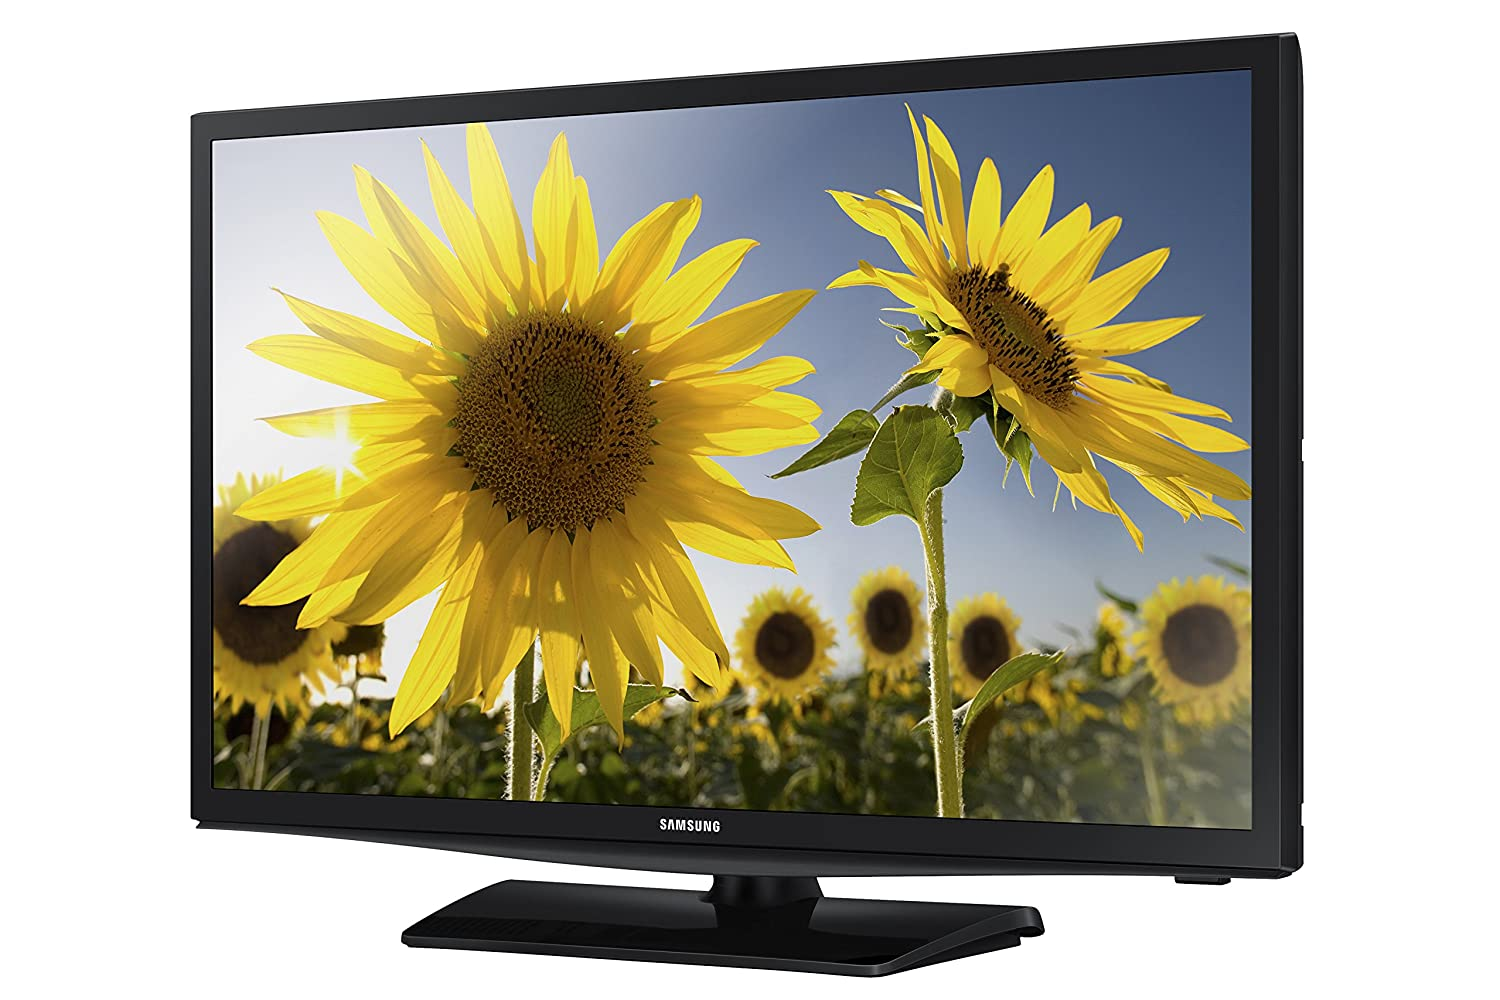 7338d780a6f84 Amazon.com  Samsung UN24H4500 24-Inch 720p Smart LED TV (2014 Model)   Electronics